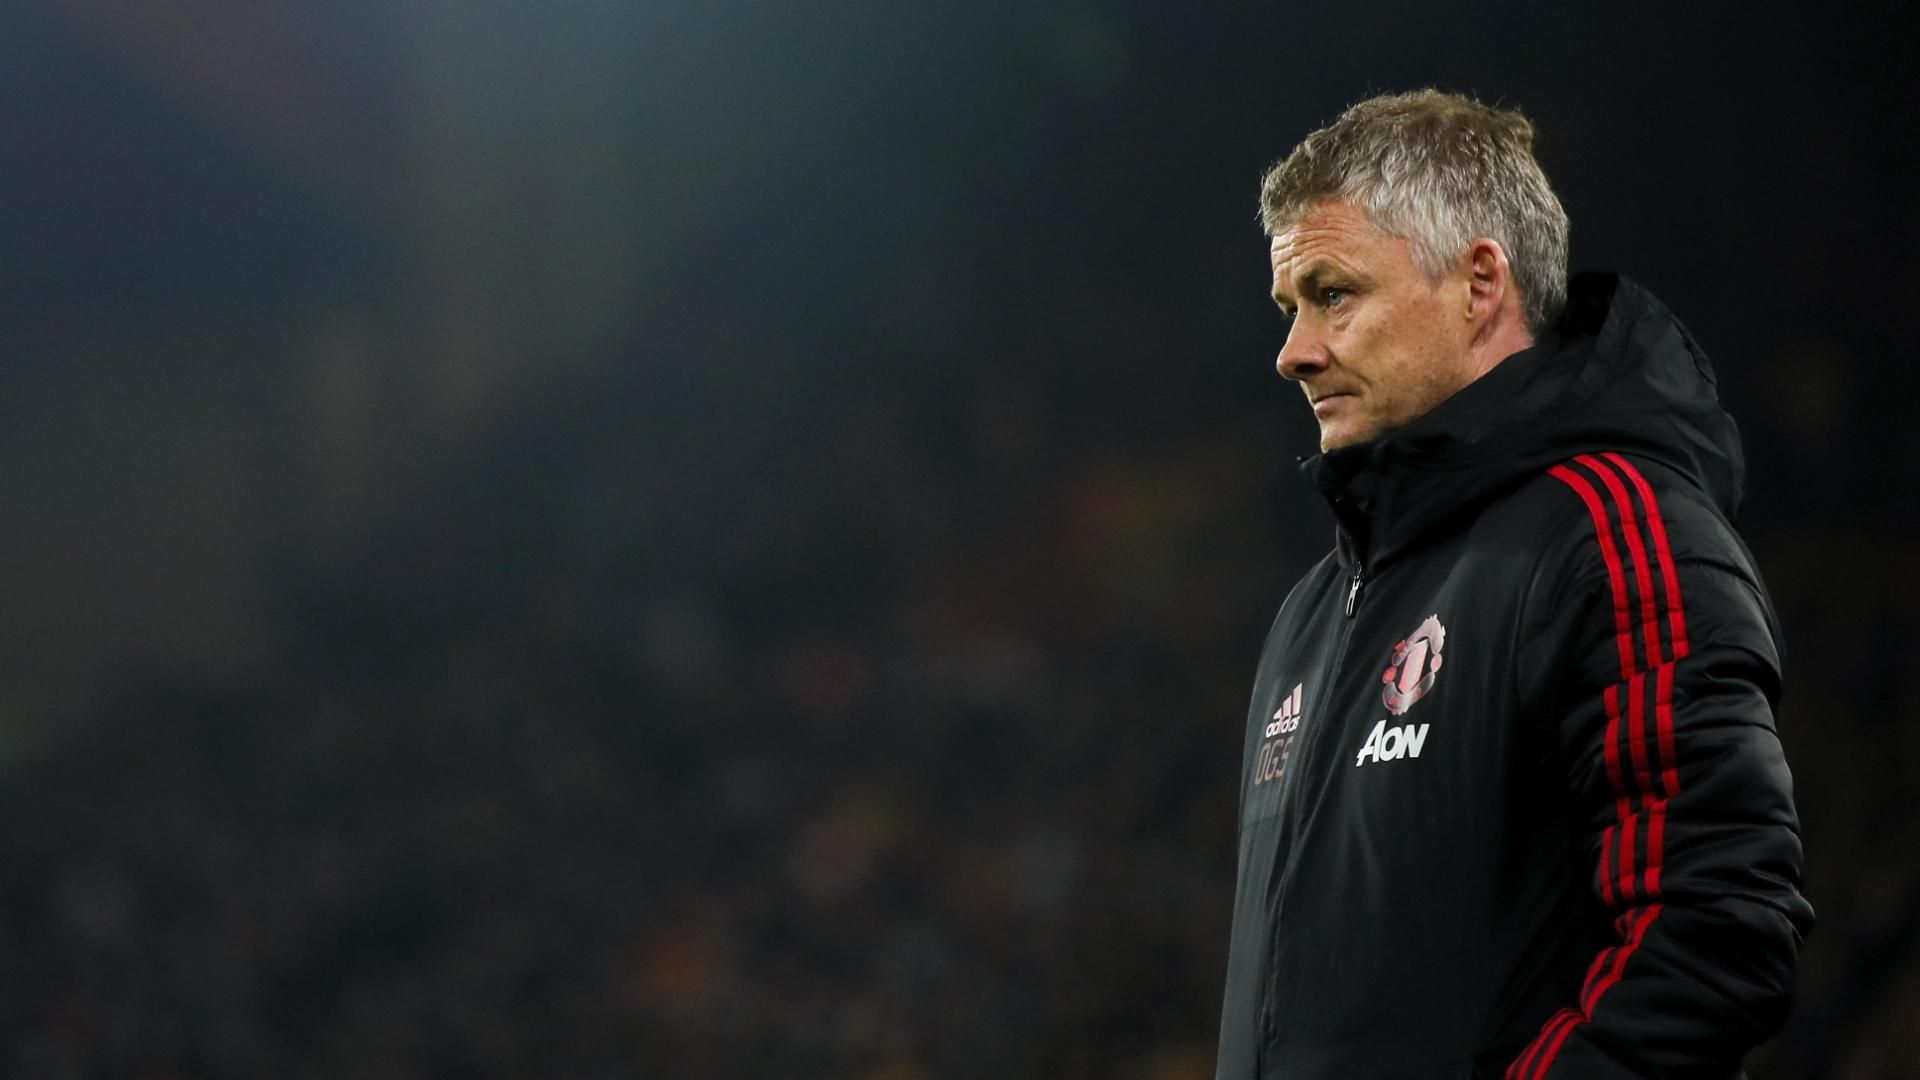 The arguments for and against keeping Solskjaer long term